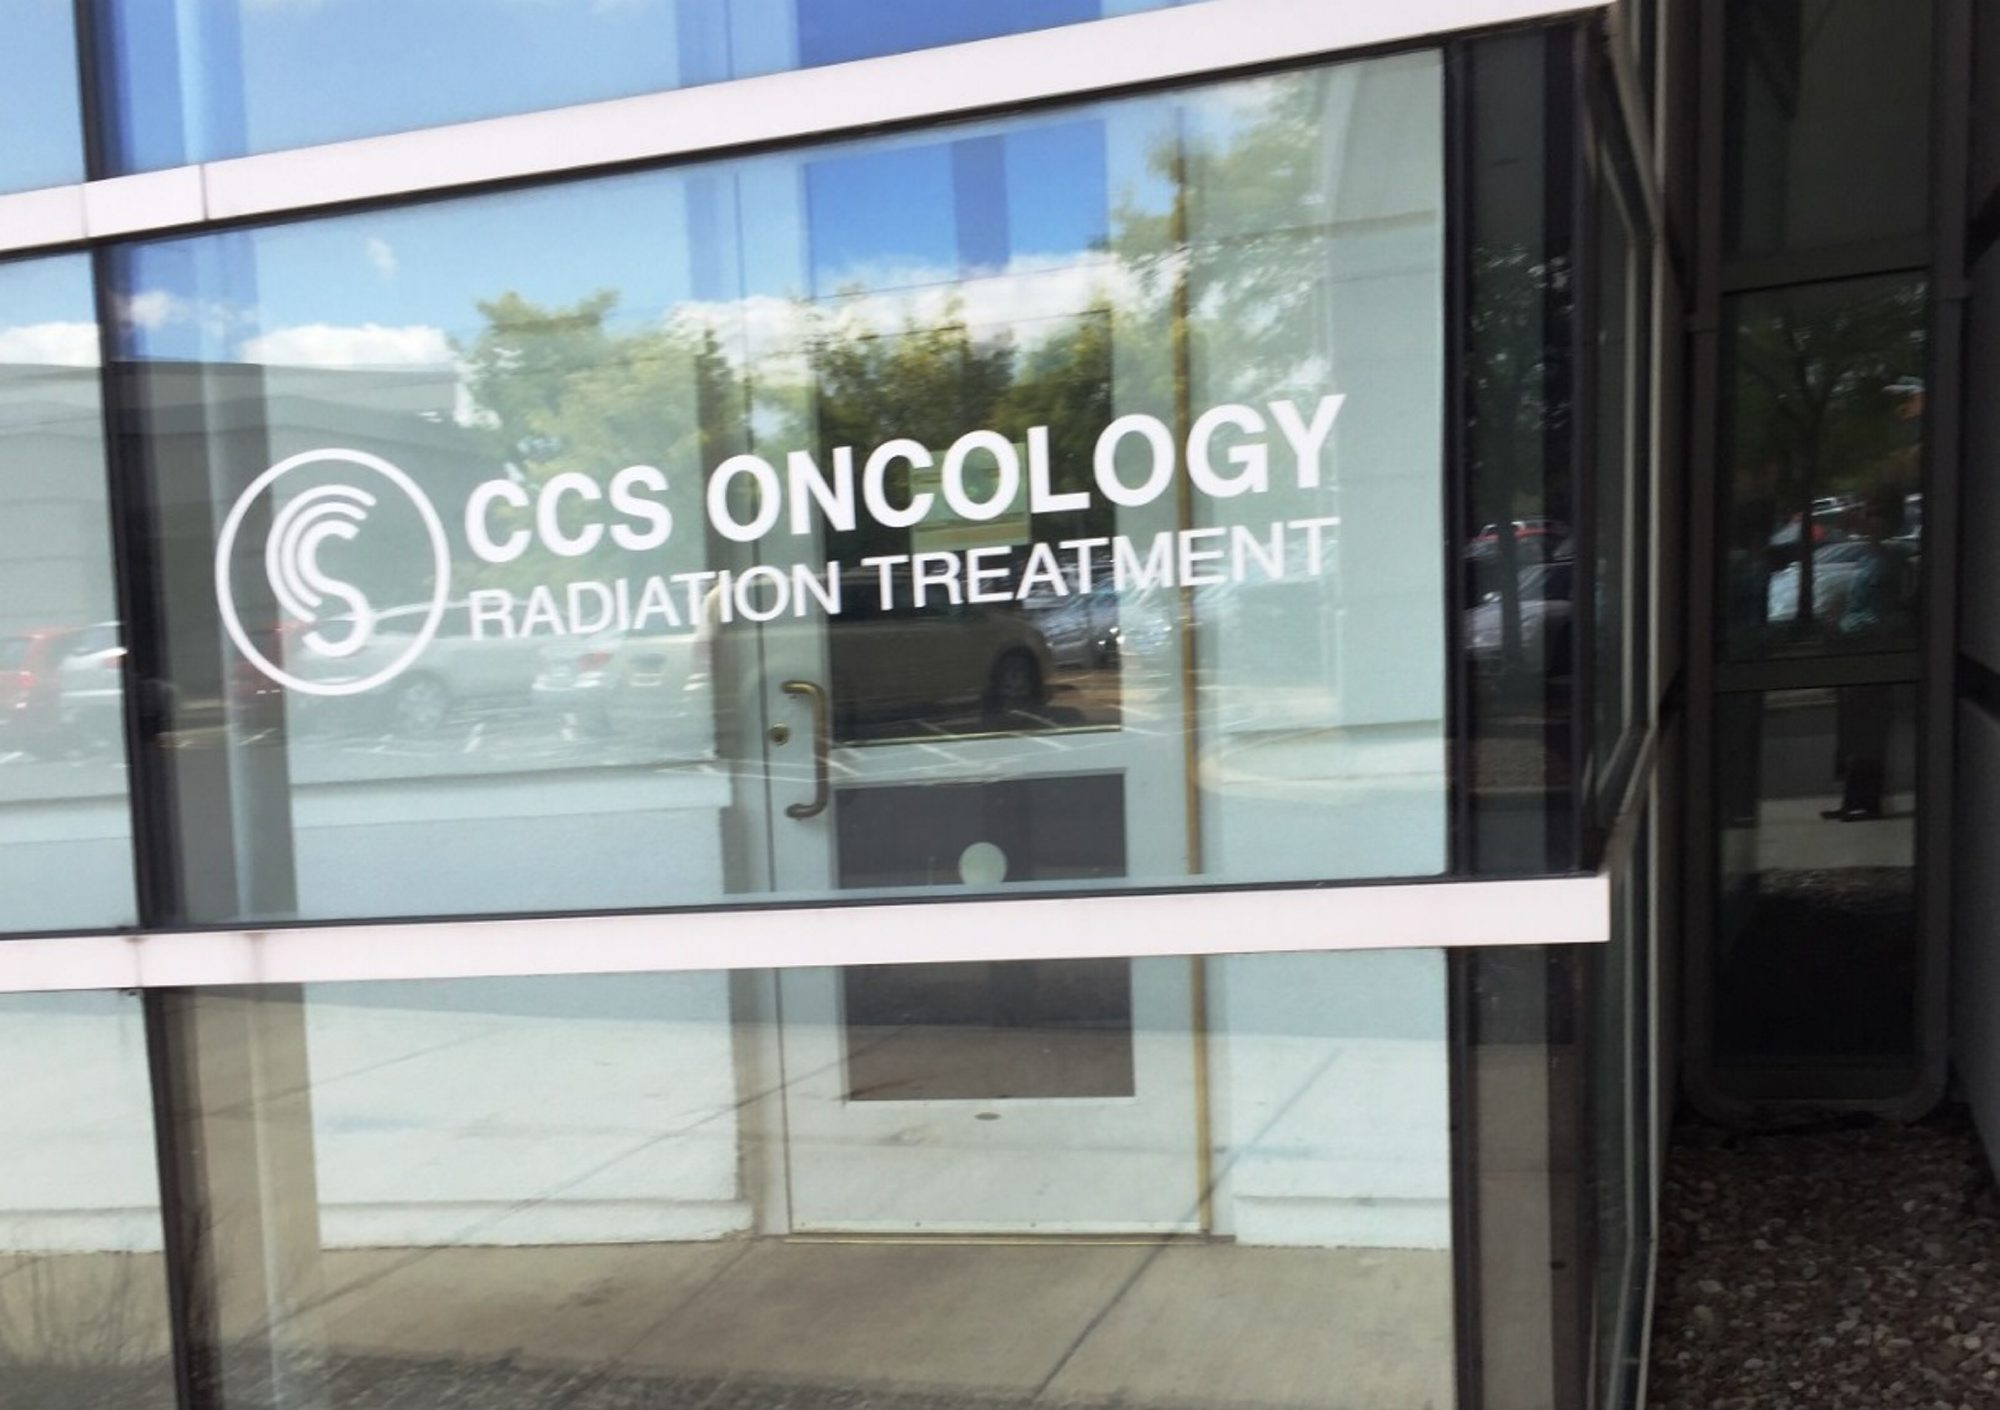 CCS Oncology complains that once talks broke down, Independent Health directly notified patients of the decision before its own doctors had a chance to talk to them, arguing this action drove patients away from CCS well before the Dec. 31 termination of the contract.